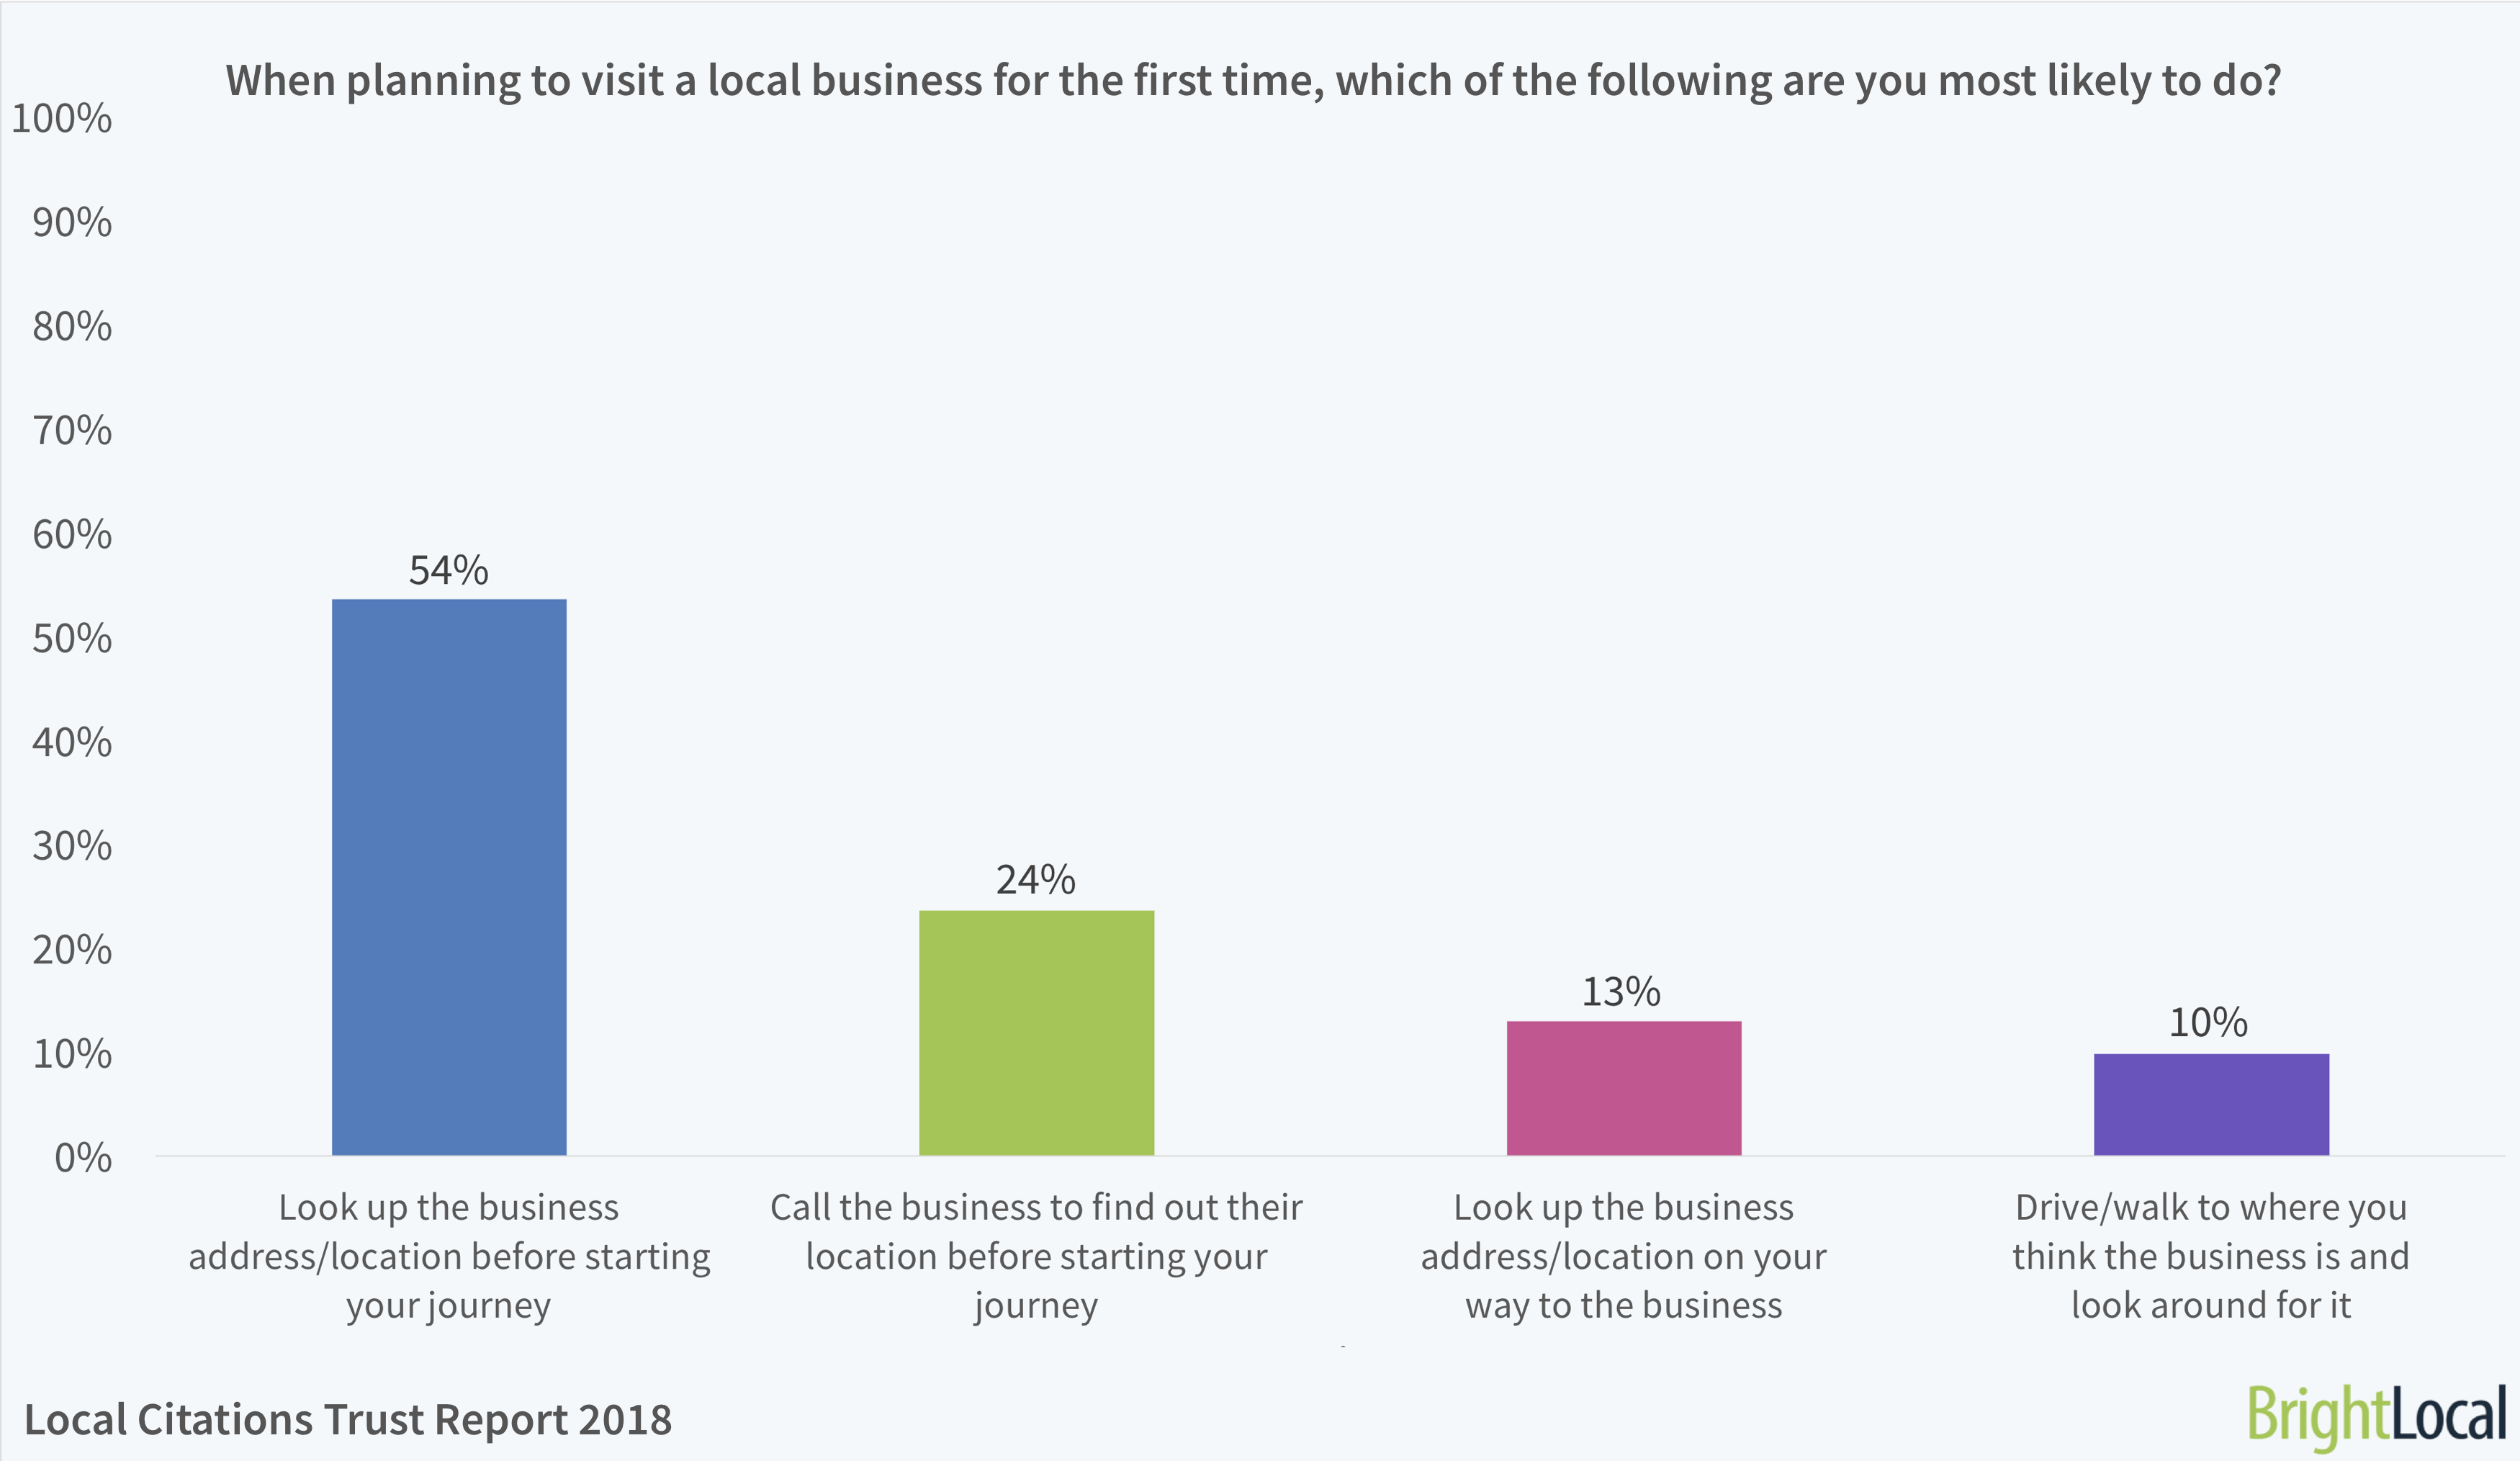 When planning to visit a local business for the first time, what are you most likely to do? | BrightLocal Local Citations Trust Report